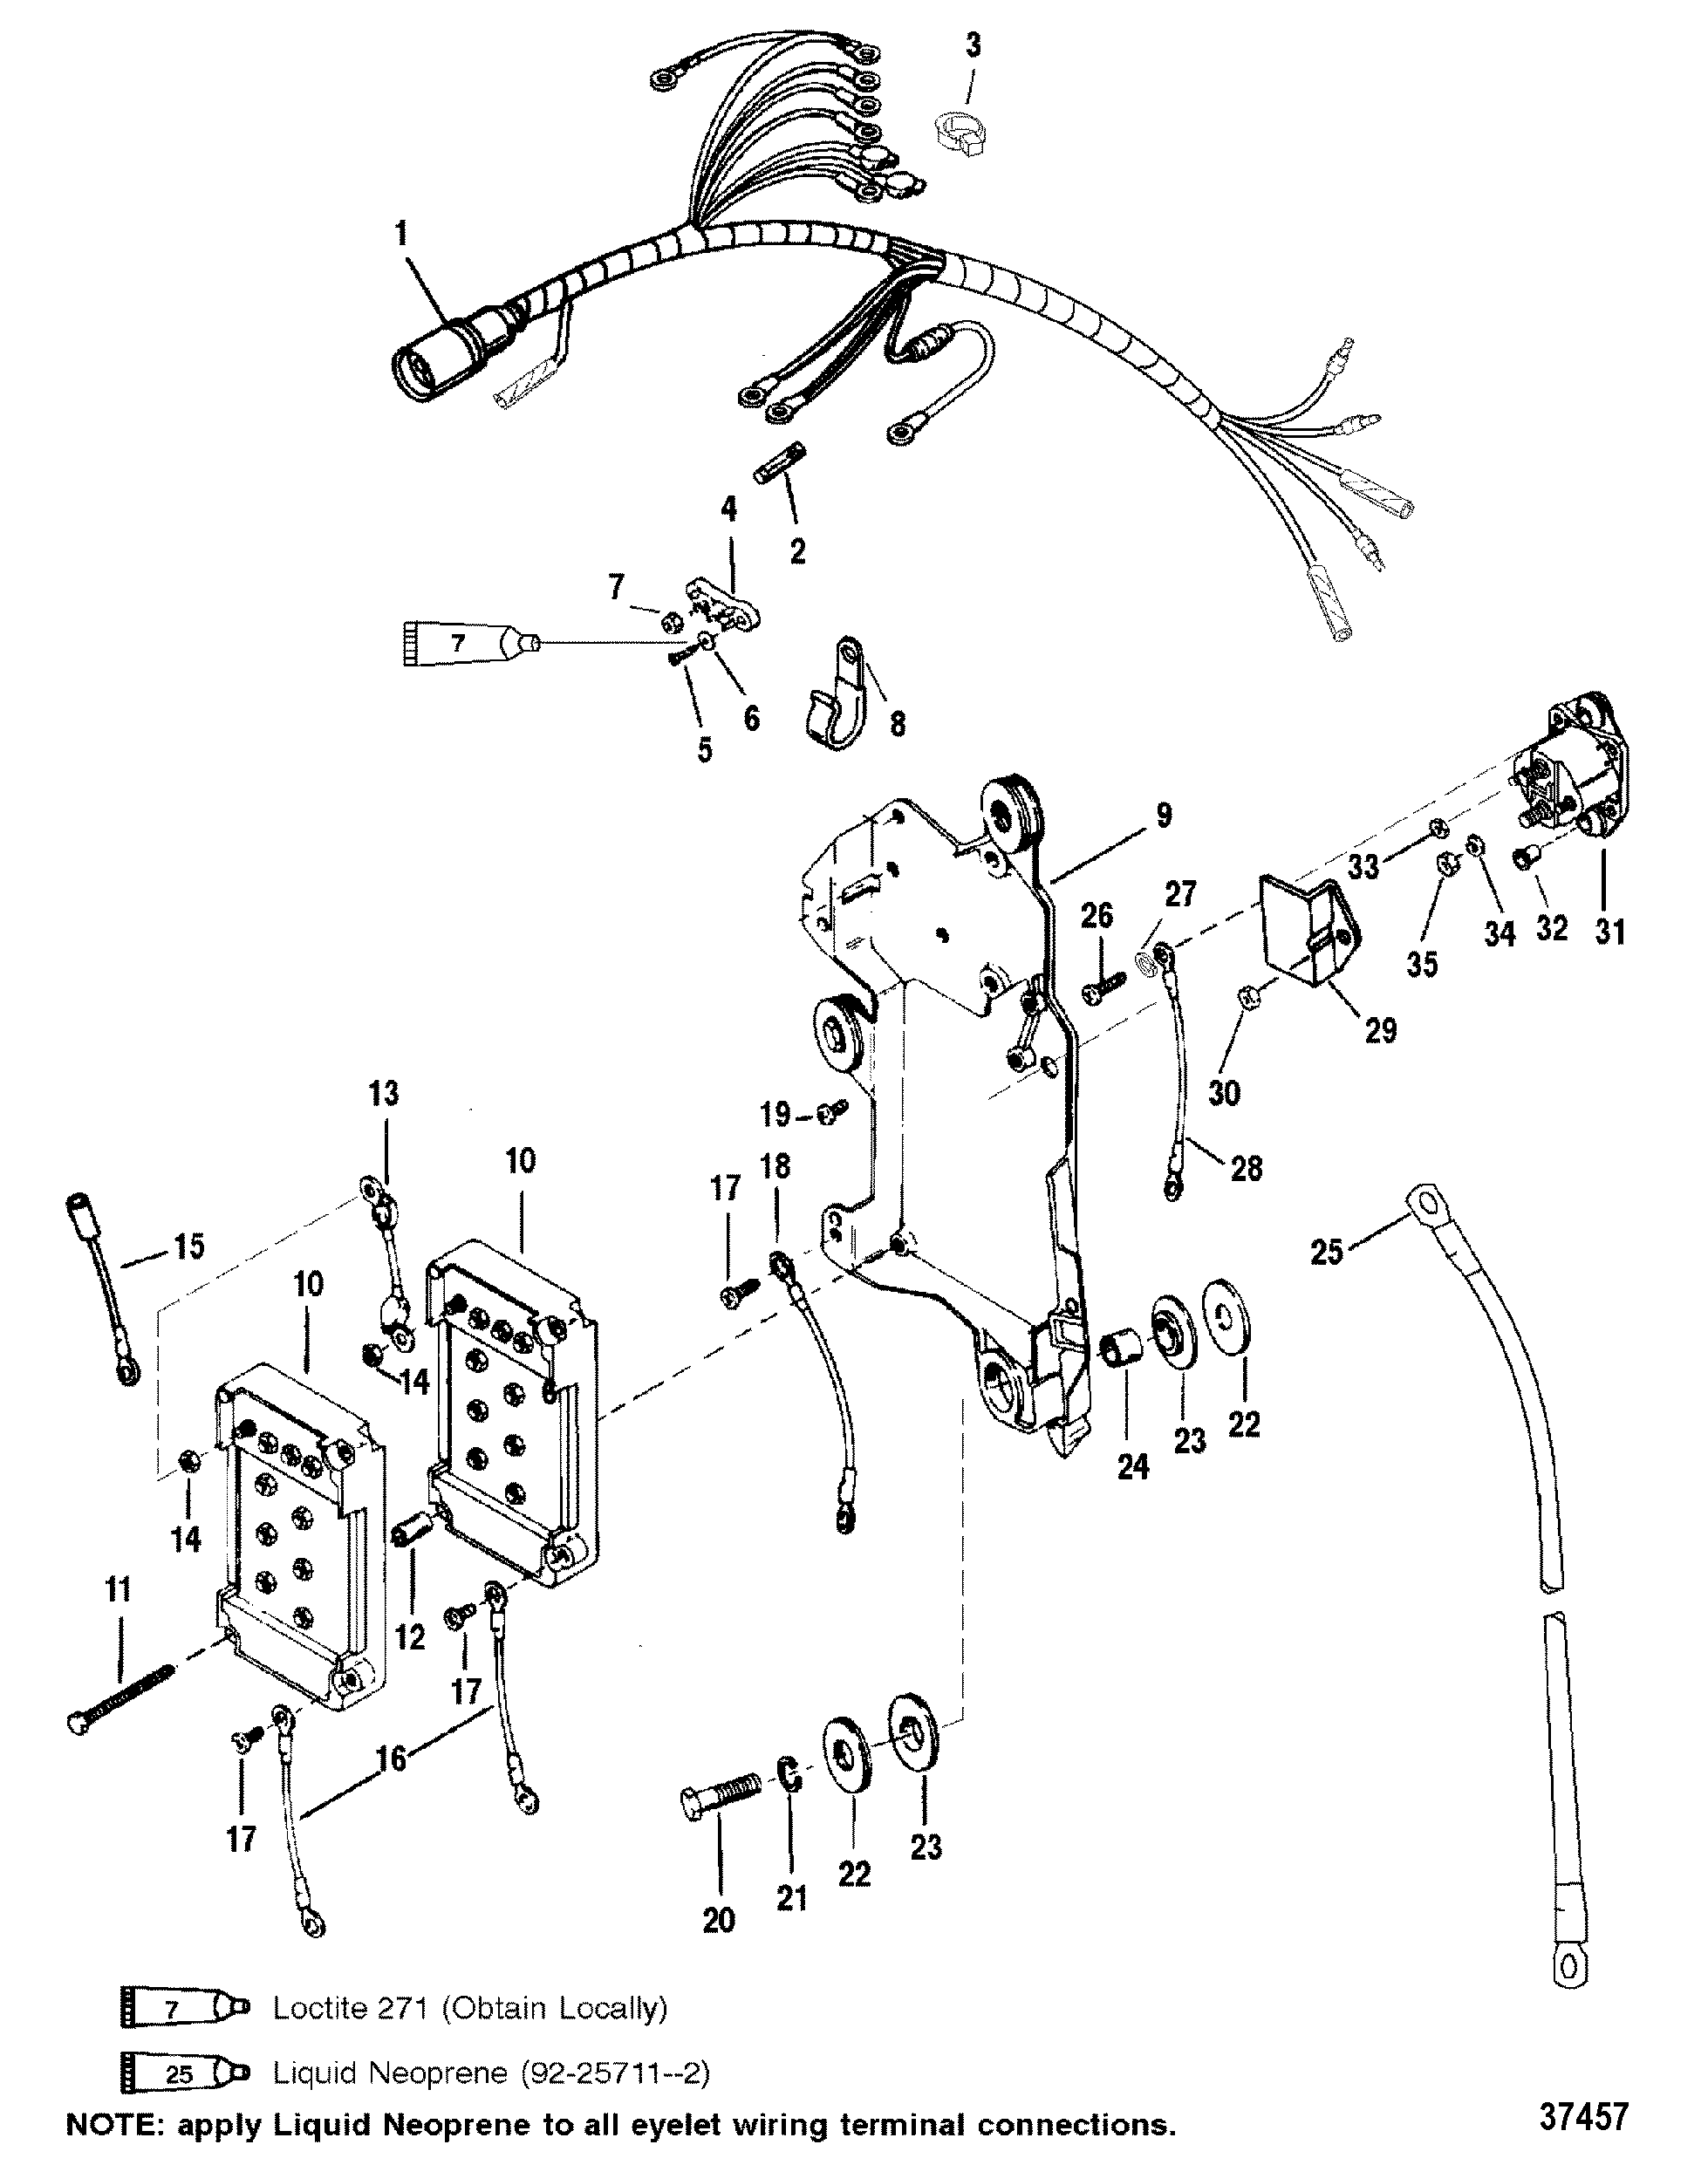 37457 wiring harness starter solenoid for mariner mercury 150 175 200 efi mercury 14 pin wiring harness diagram at mr168.co